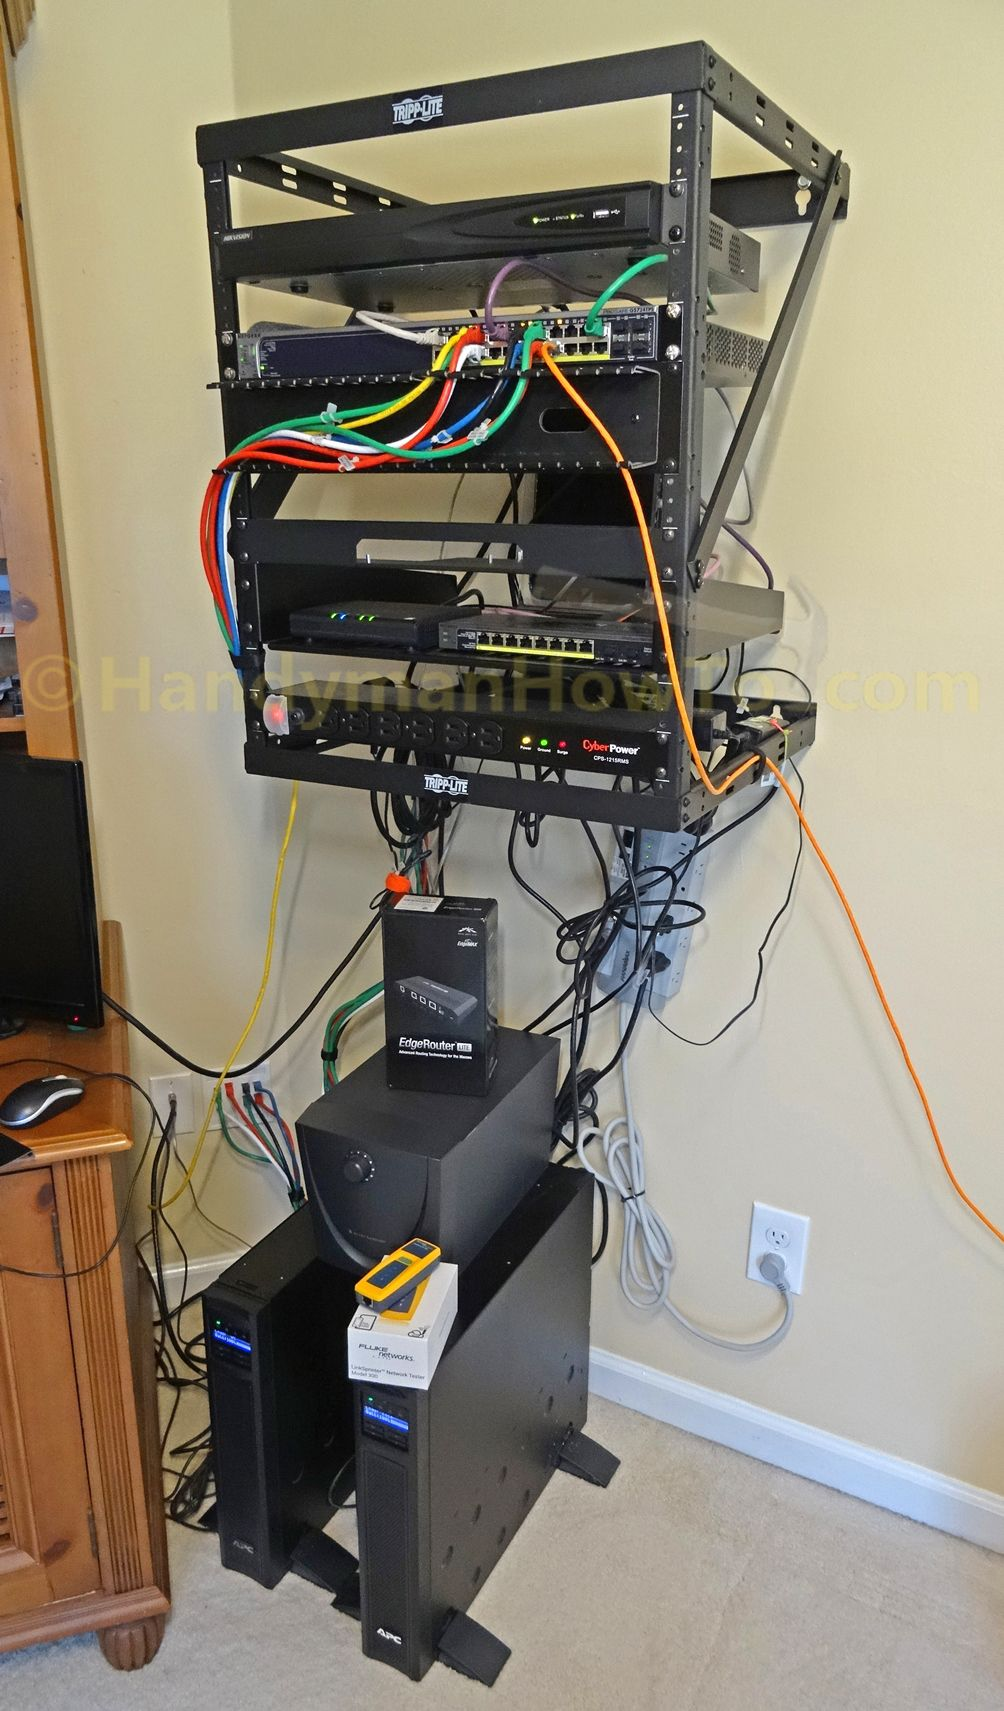 Home Network Wall Mount Rack Home Infrastructure